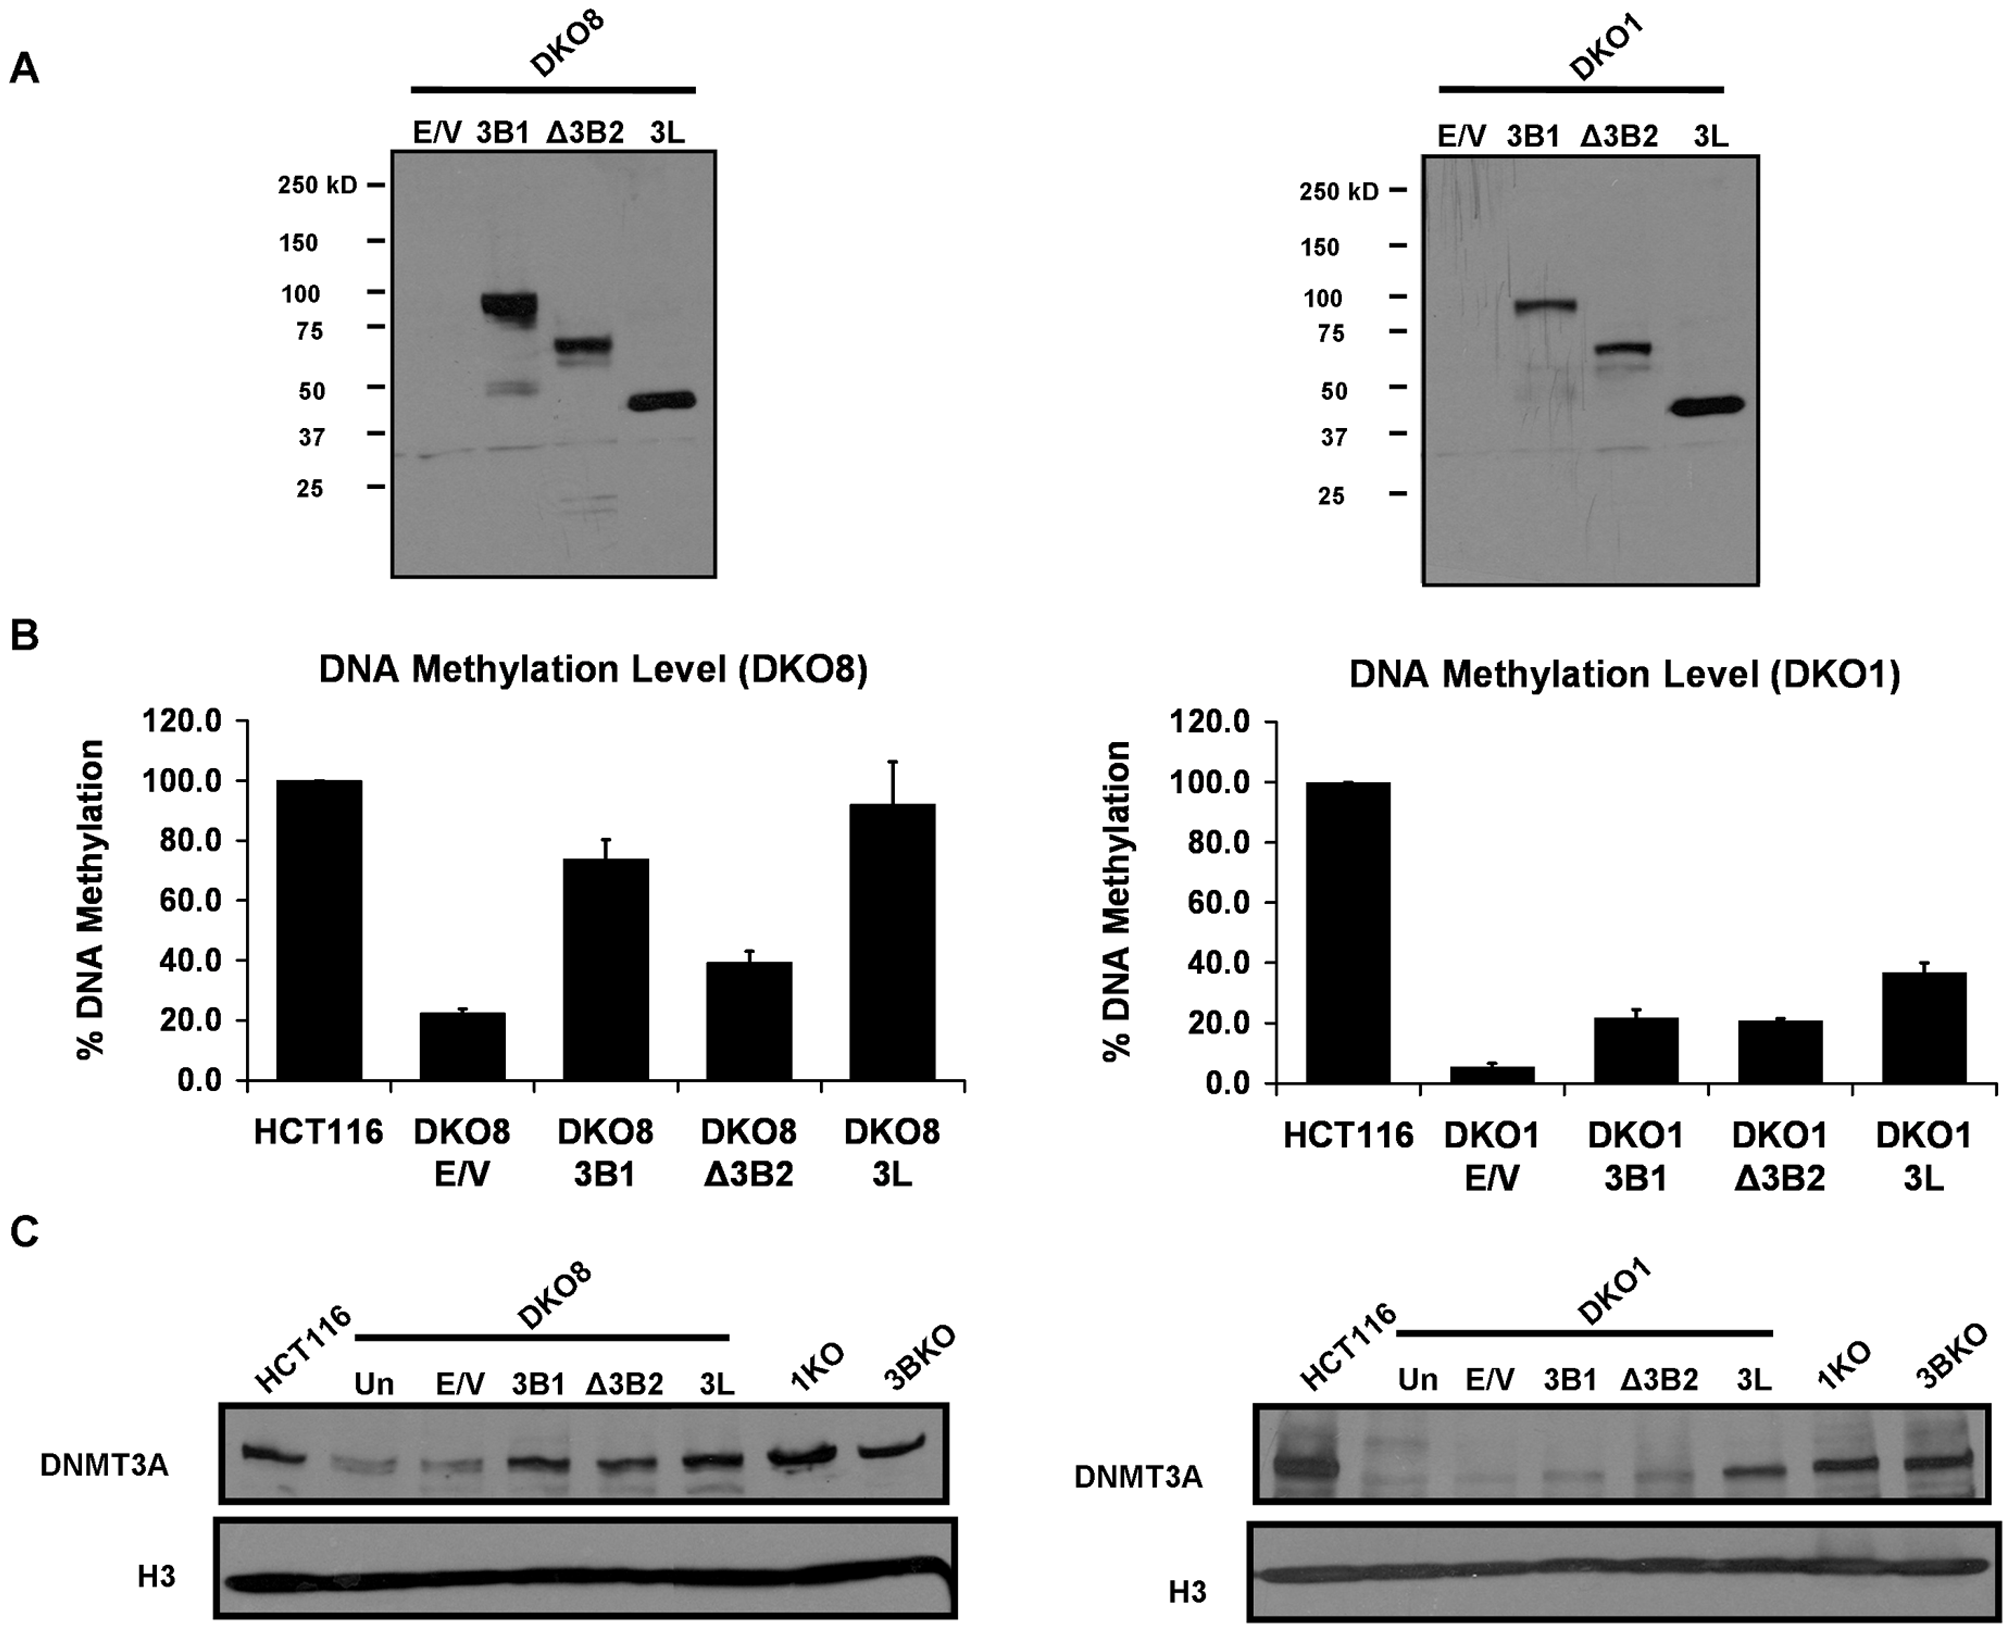 Increase in DNA methylation restores the DNMT3A protein level in DKO cells.